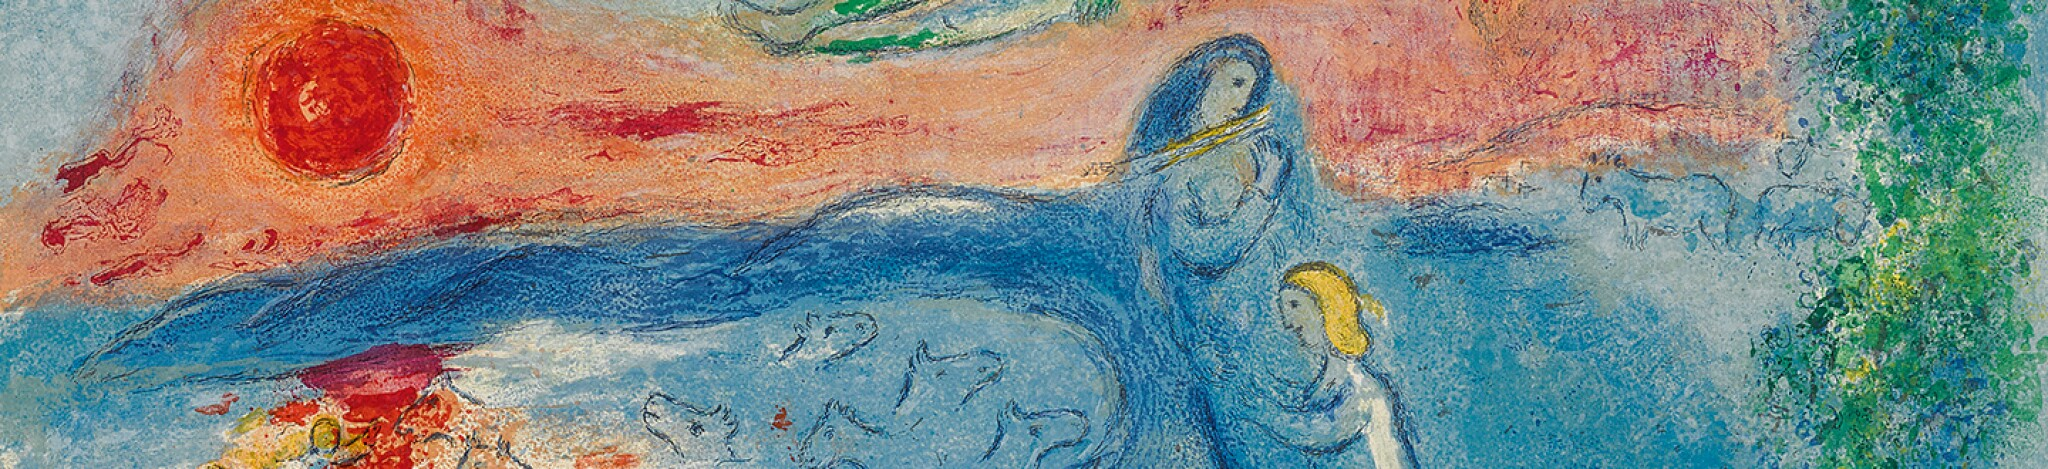 Marc Chagall Online: A Celebration of Color